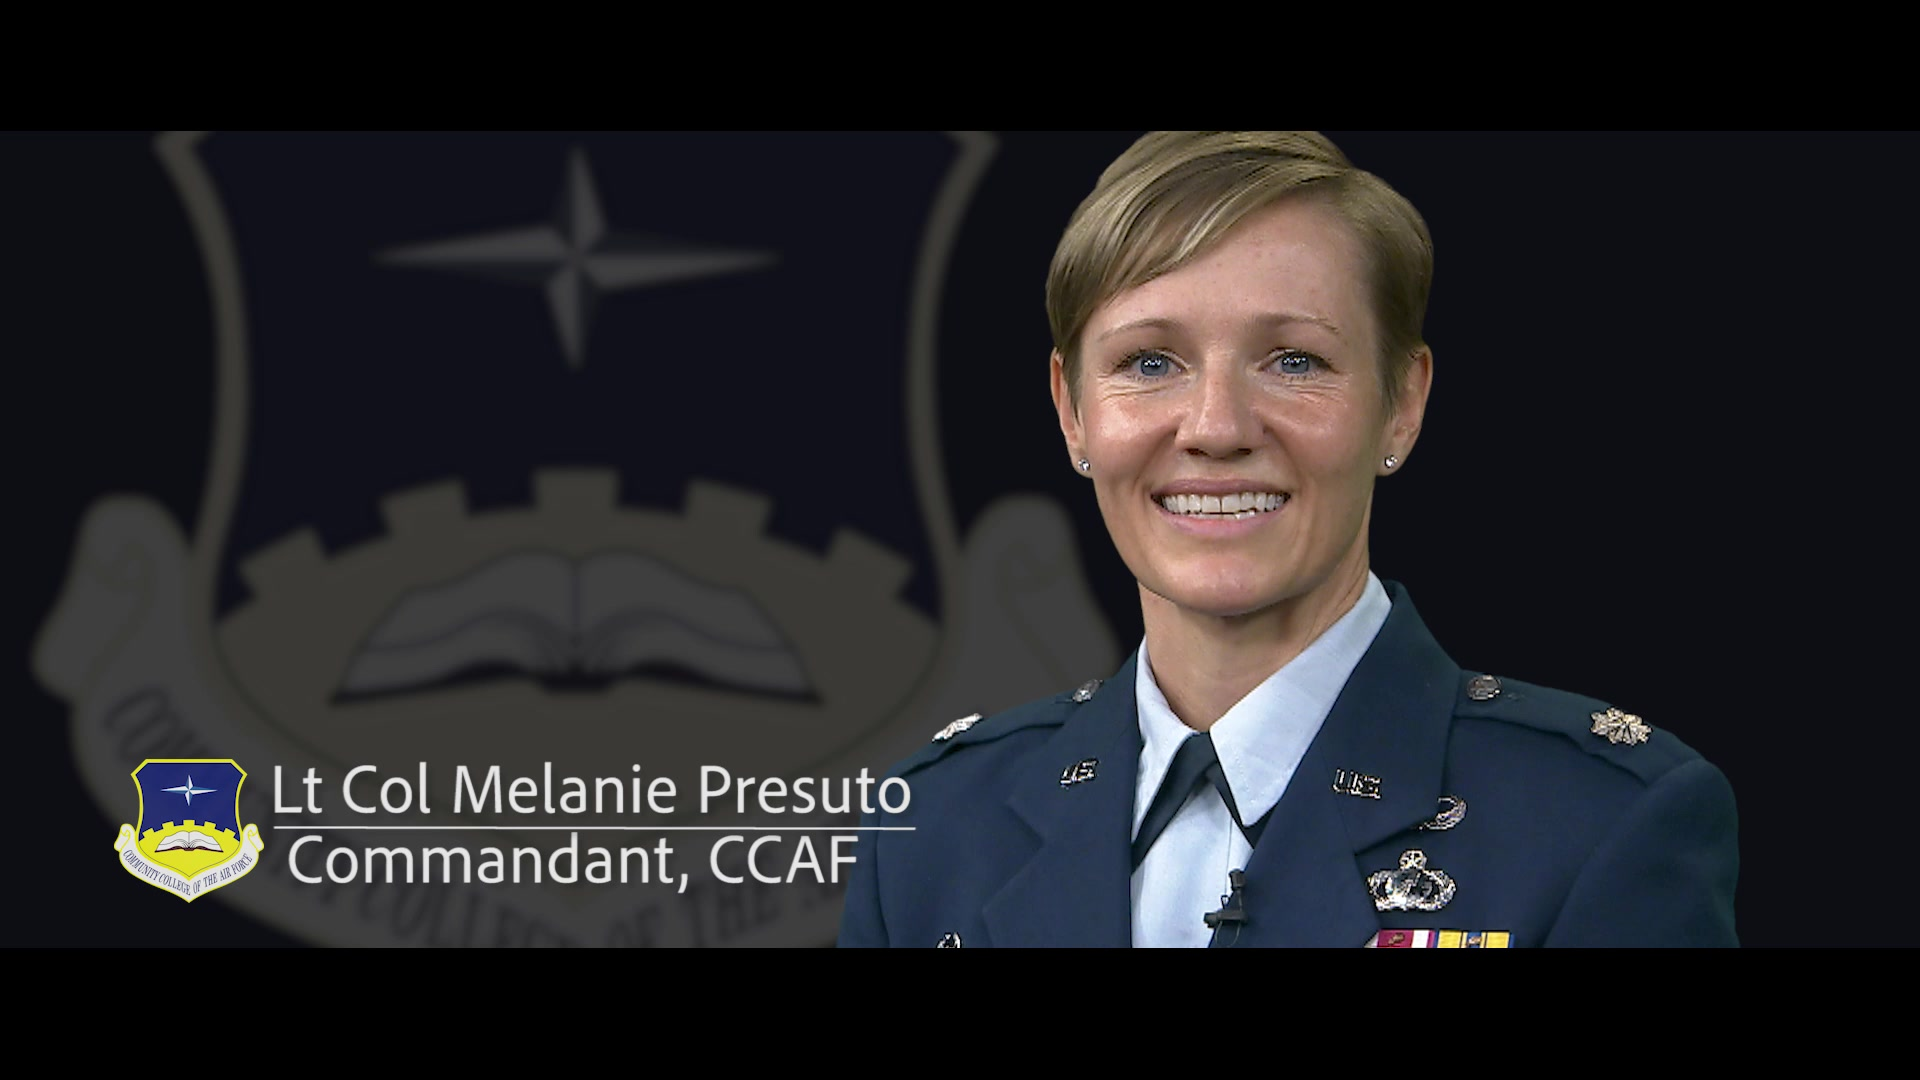 This video is for the CCAF website. An introduction to Lt Col Presuto